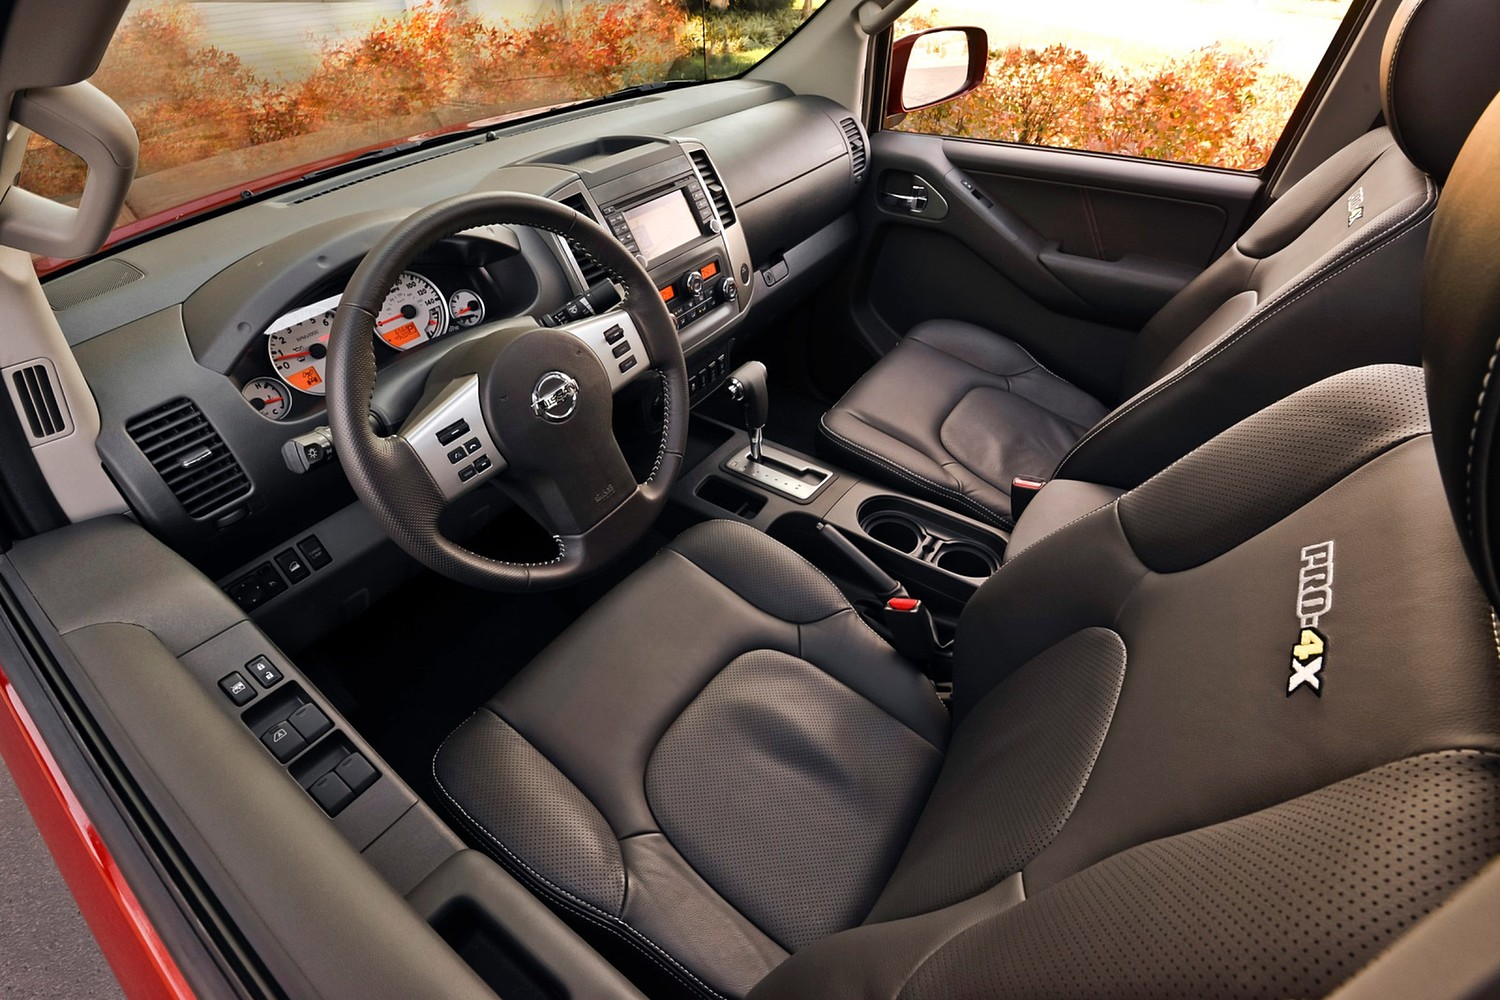 2016 Nissan Frontier PRO-4X Crew Cab Pickup Interior Shown